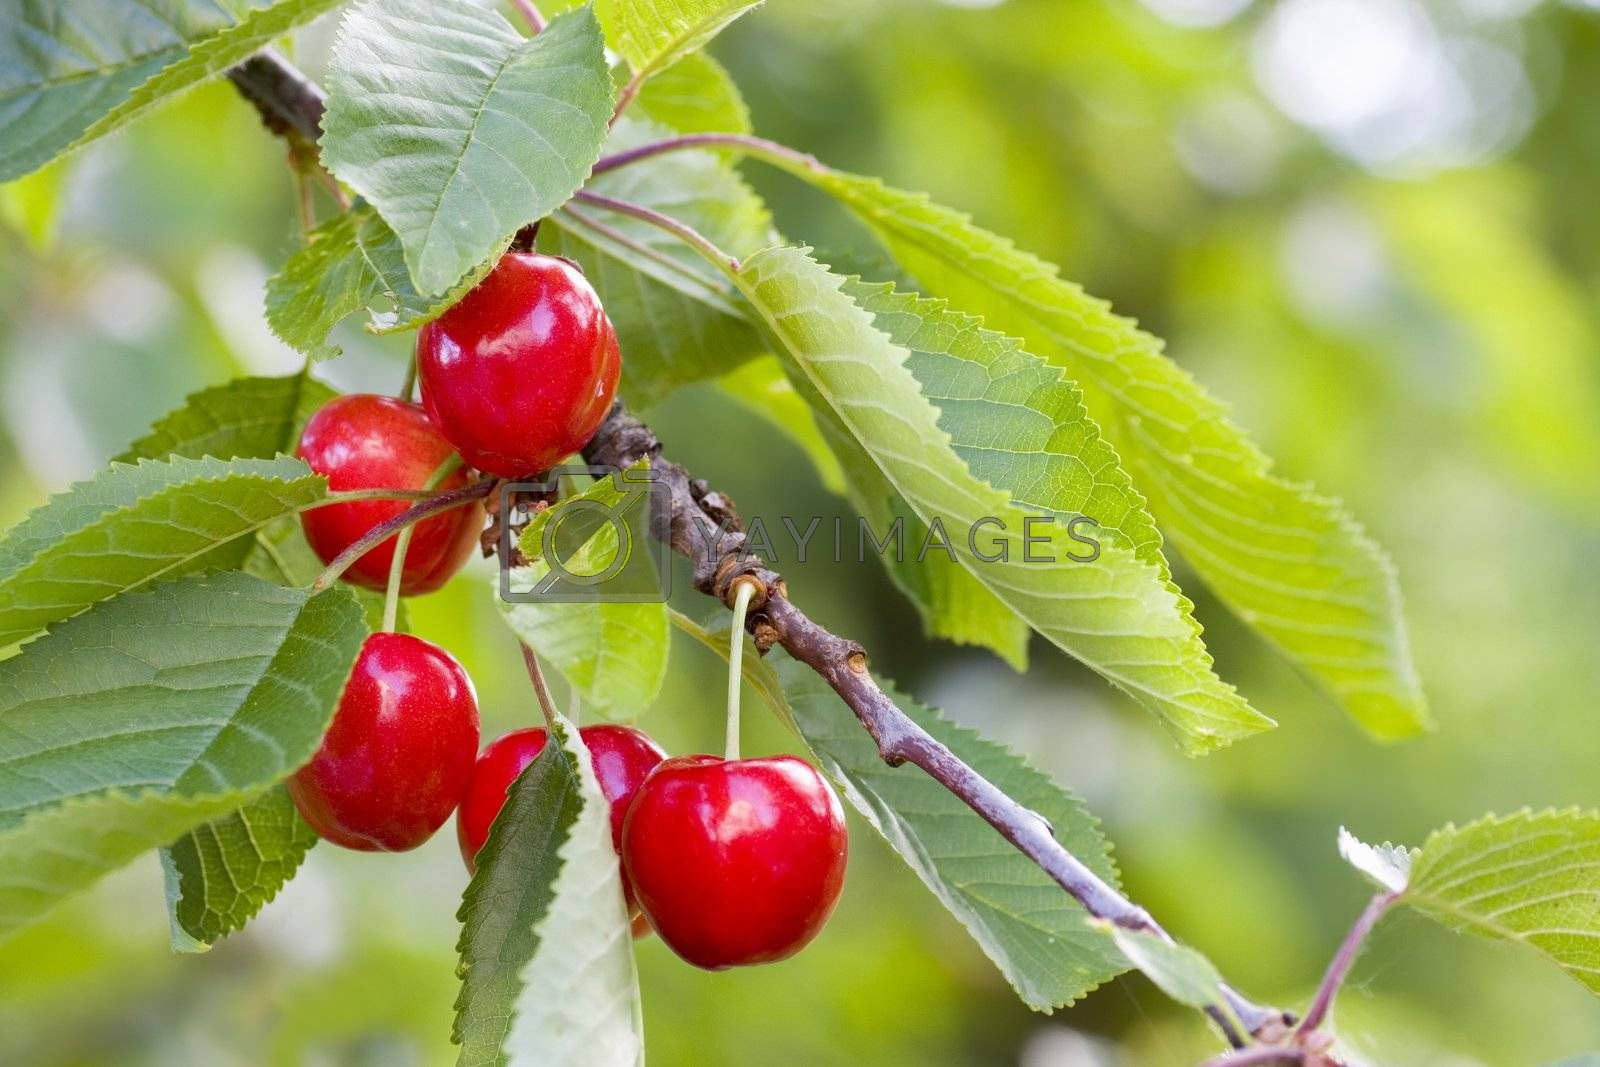 Ripe cherries on a tree by ArtmannWitte